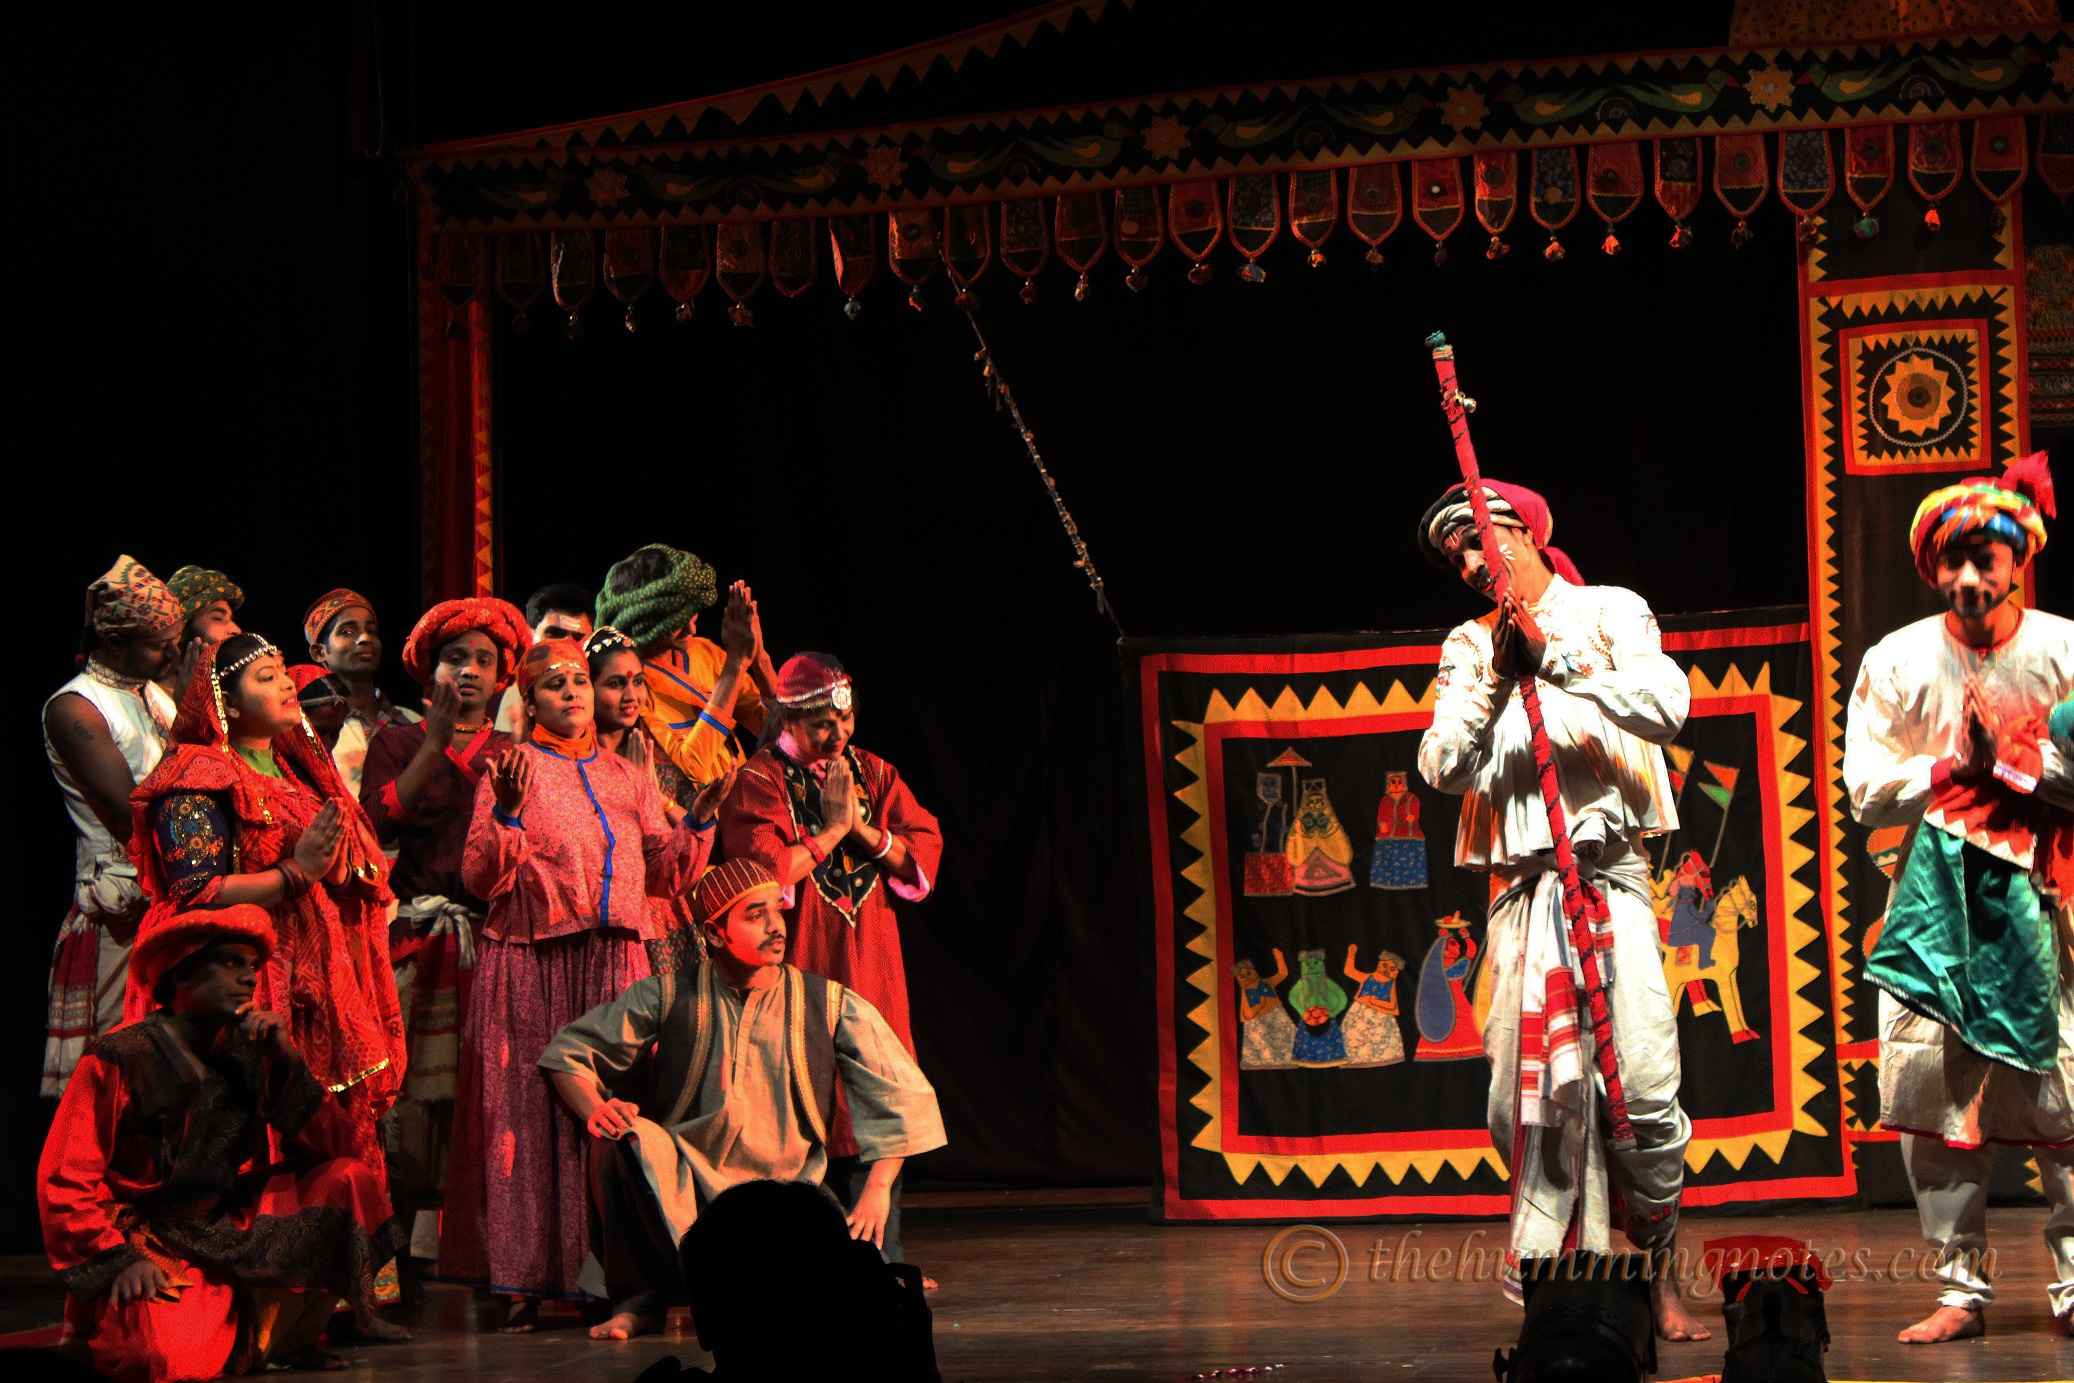 The play starts in a village fair with two men playing the role of sutradhaar (story-tellers)